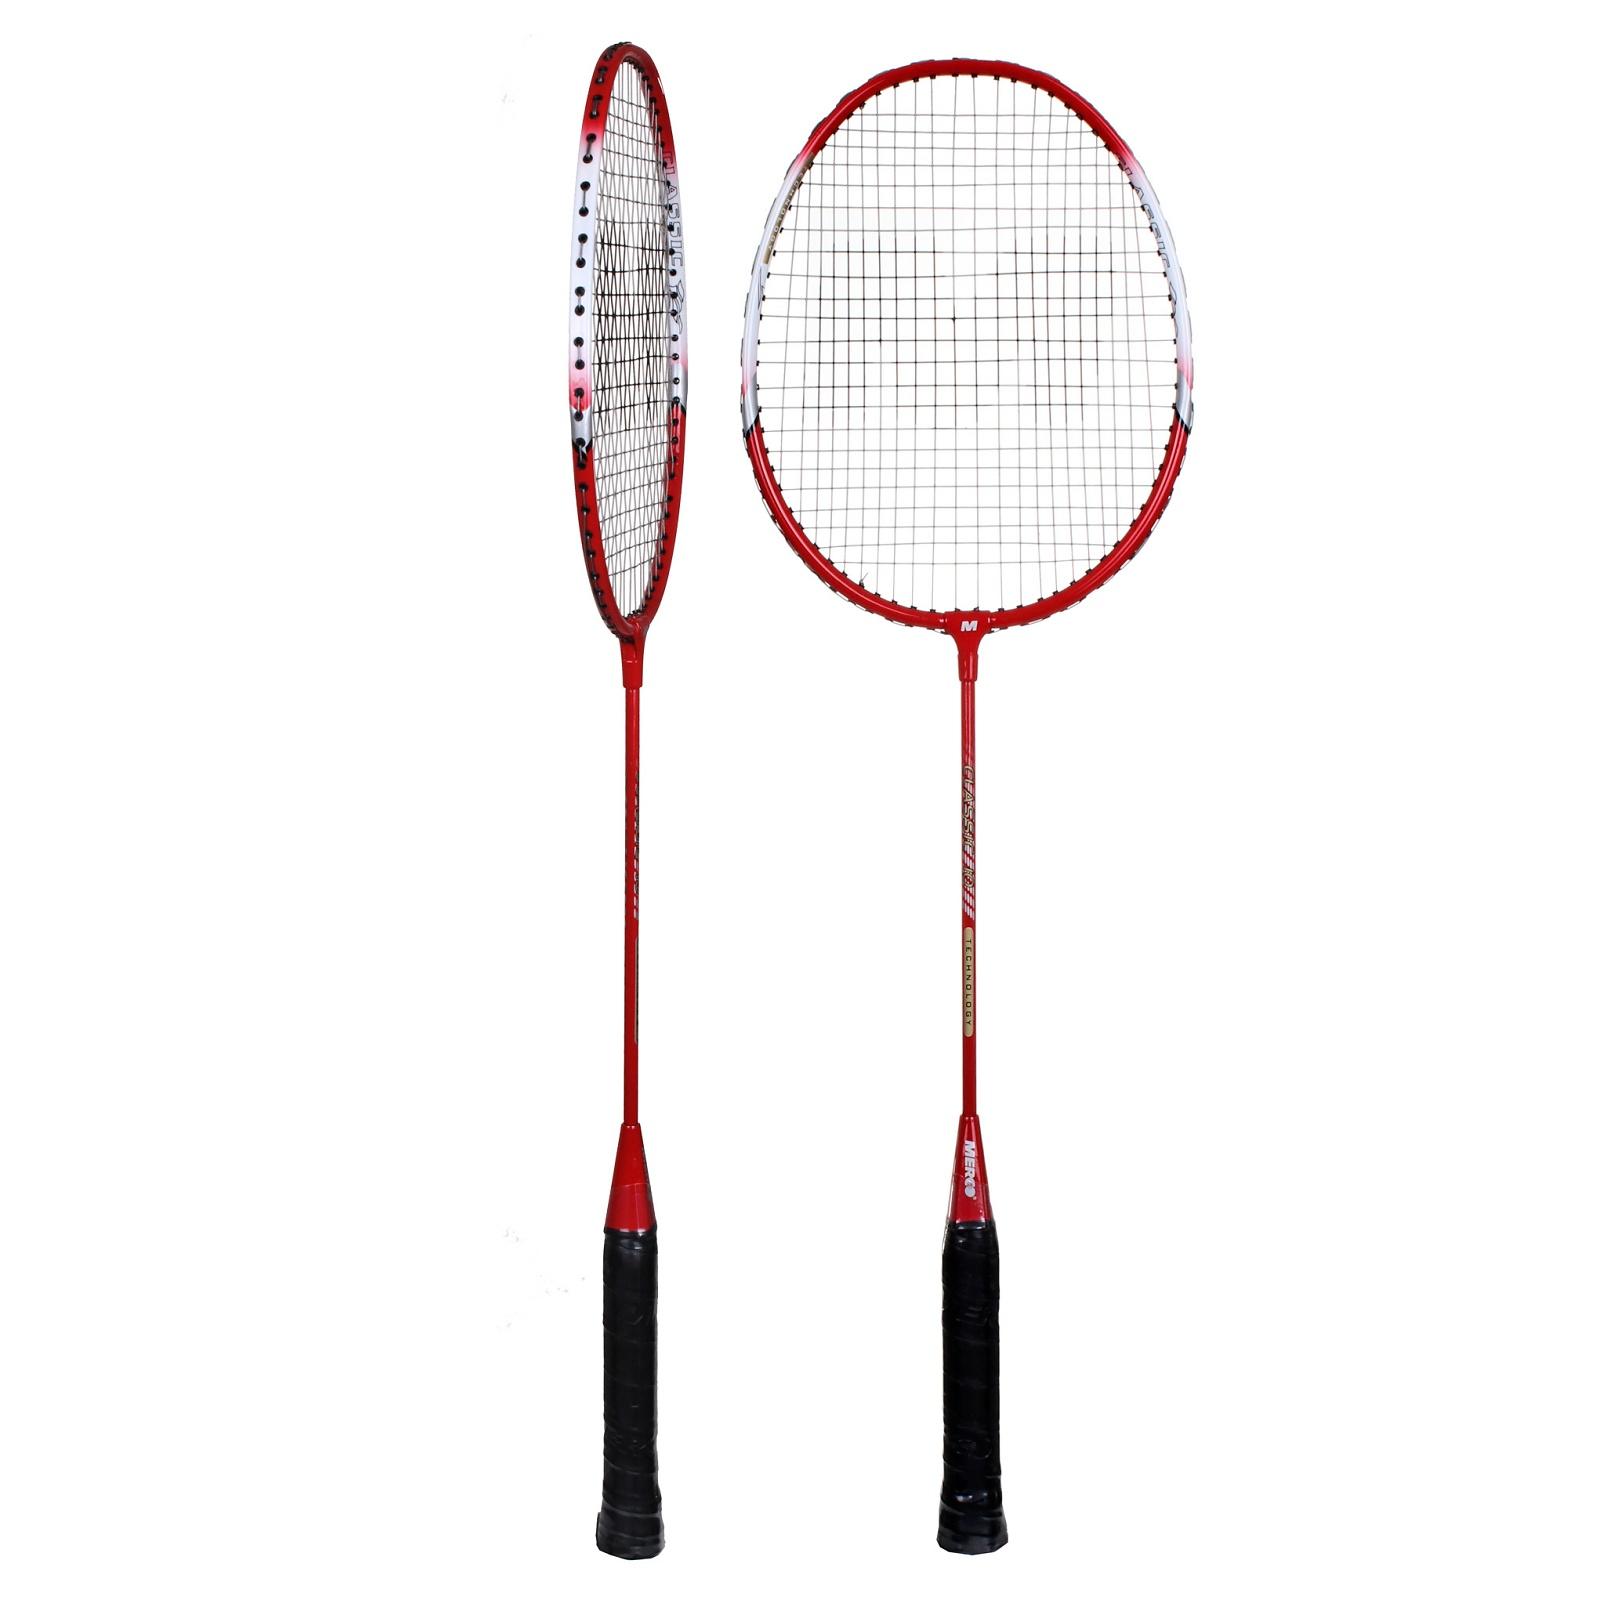 Badmintonový set MERCO Classic